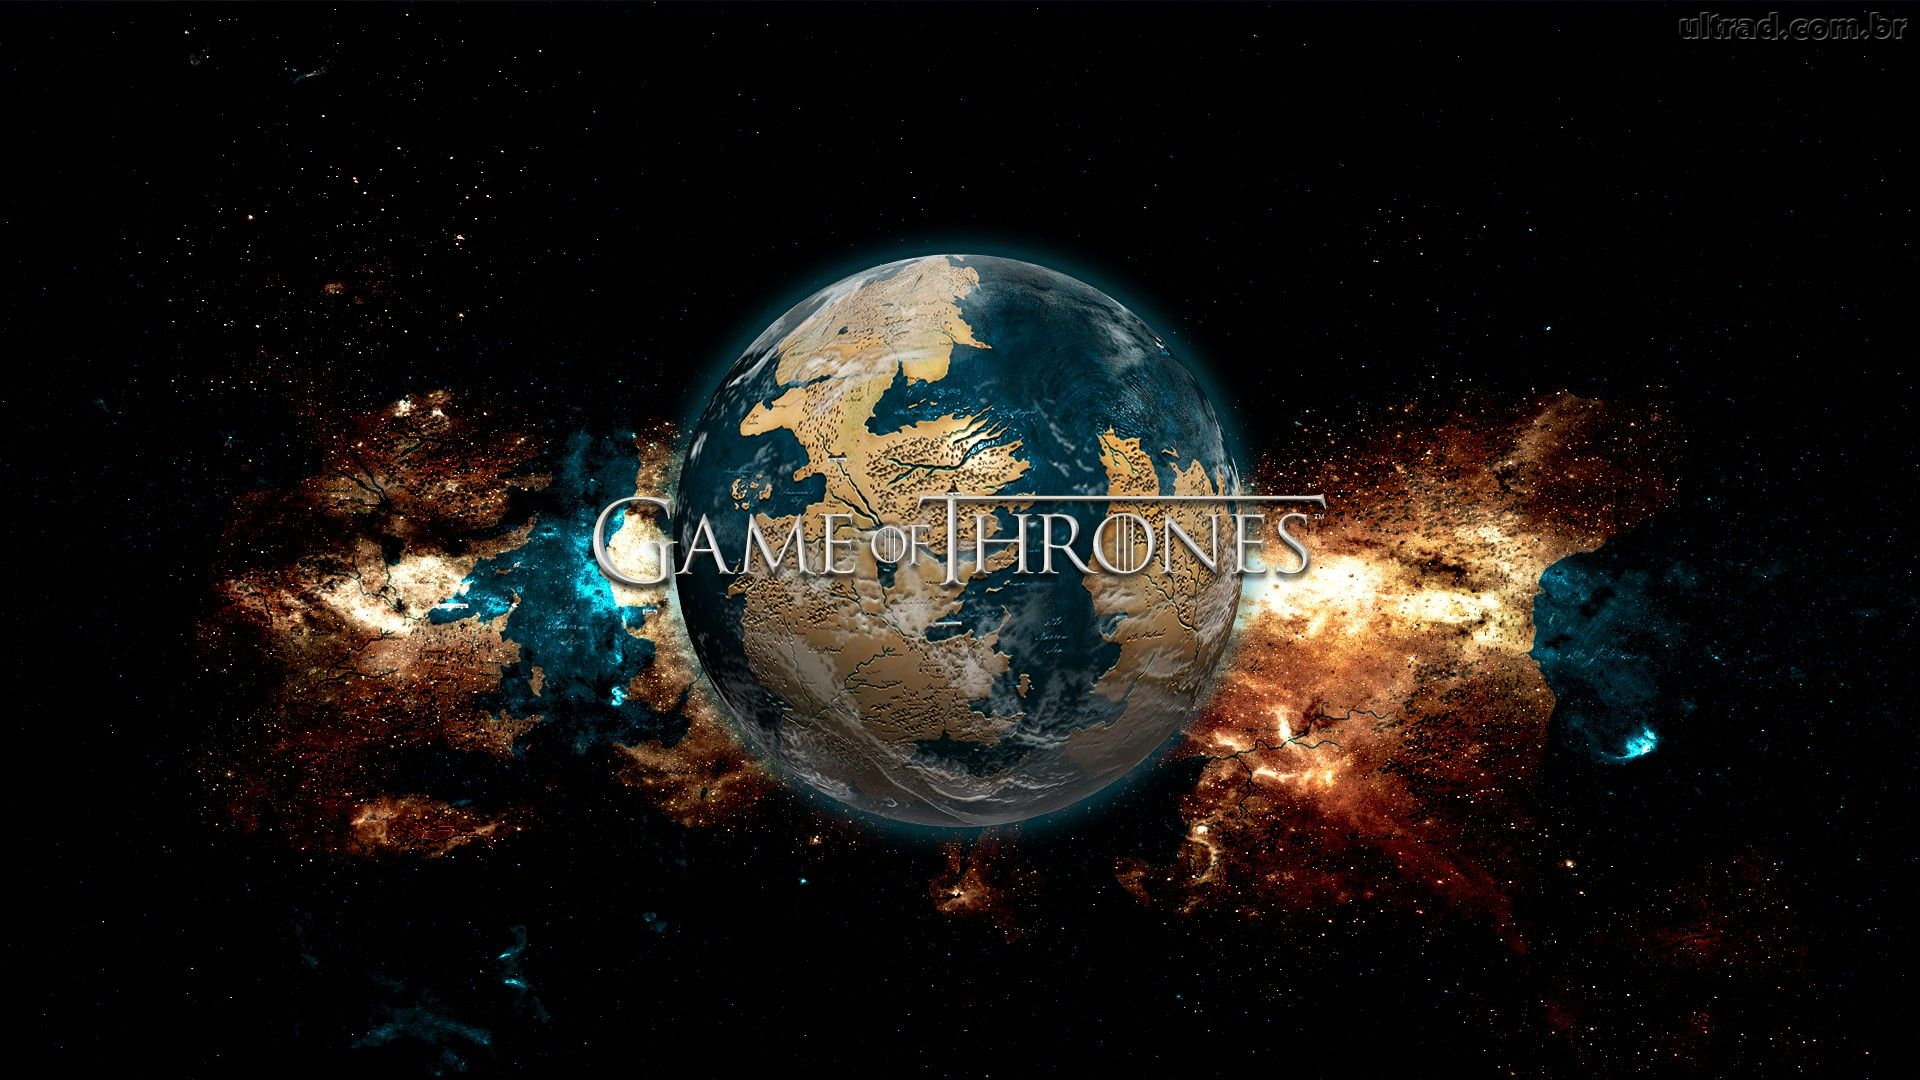 game of thrones wallpaper 1920x1080 Car Tuning 1920x1080